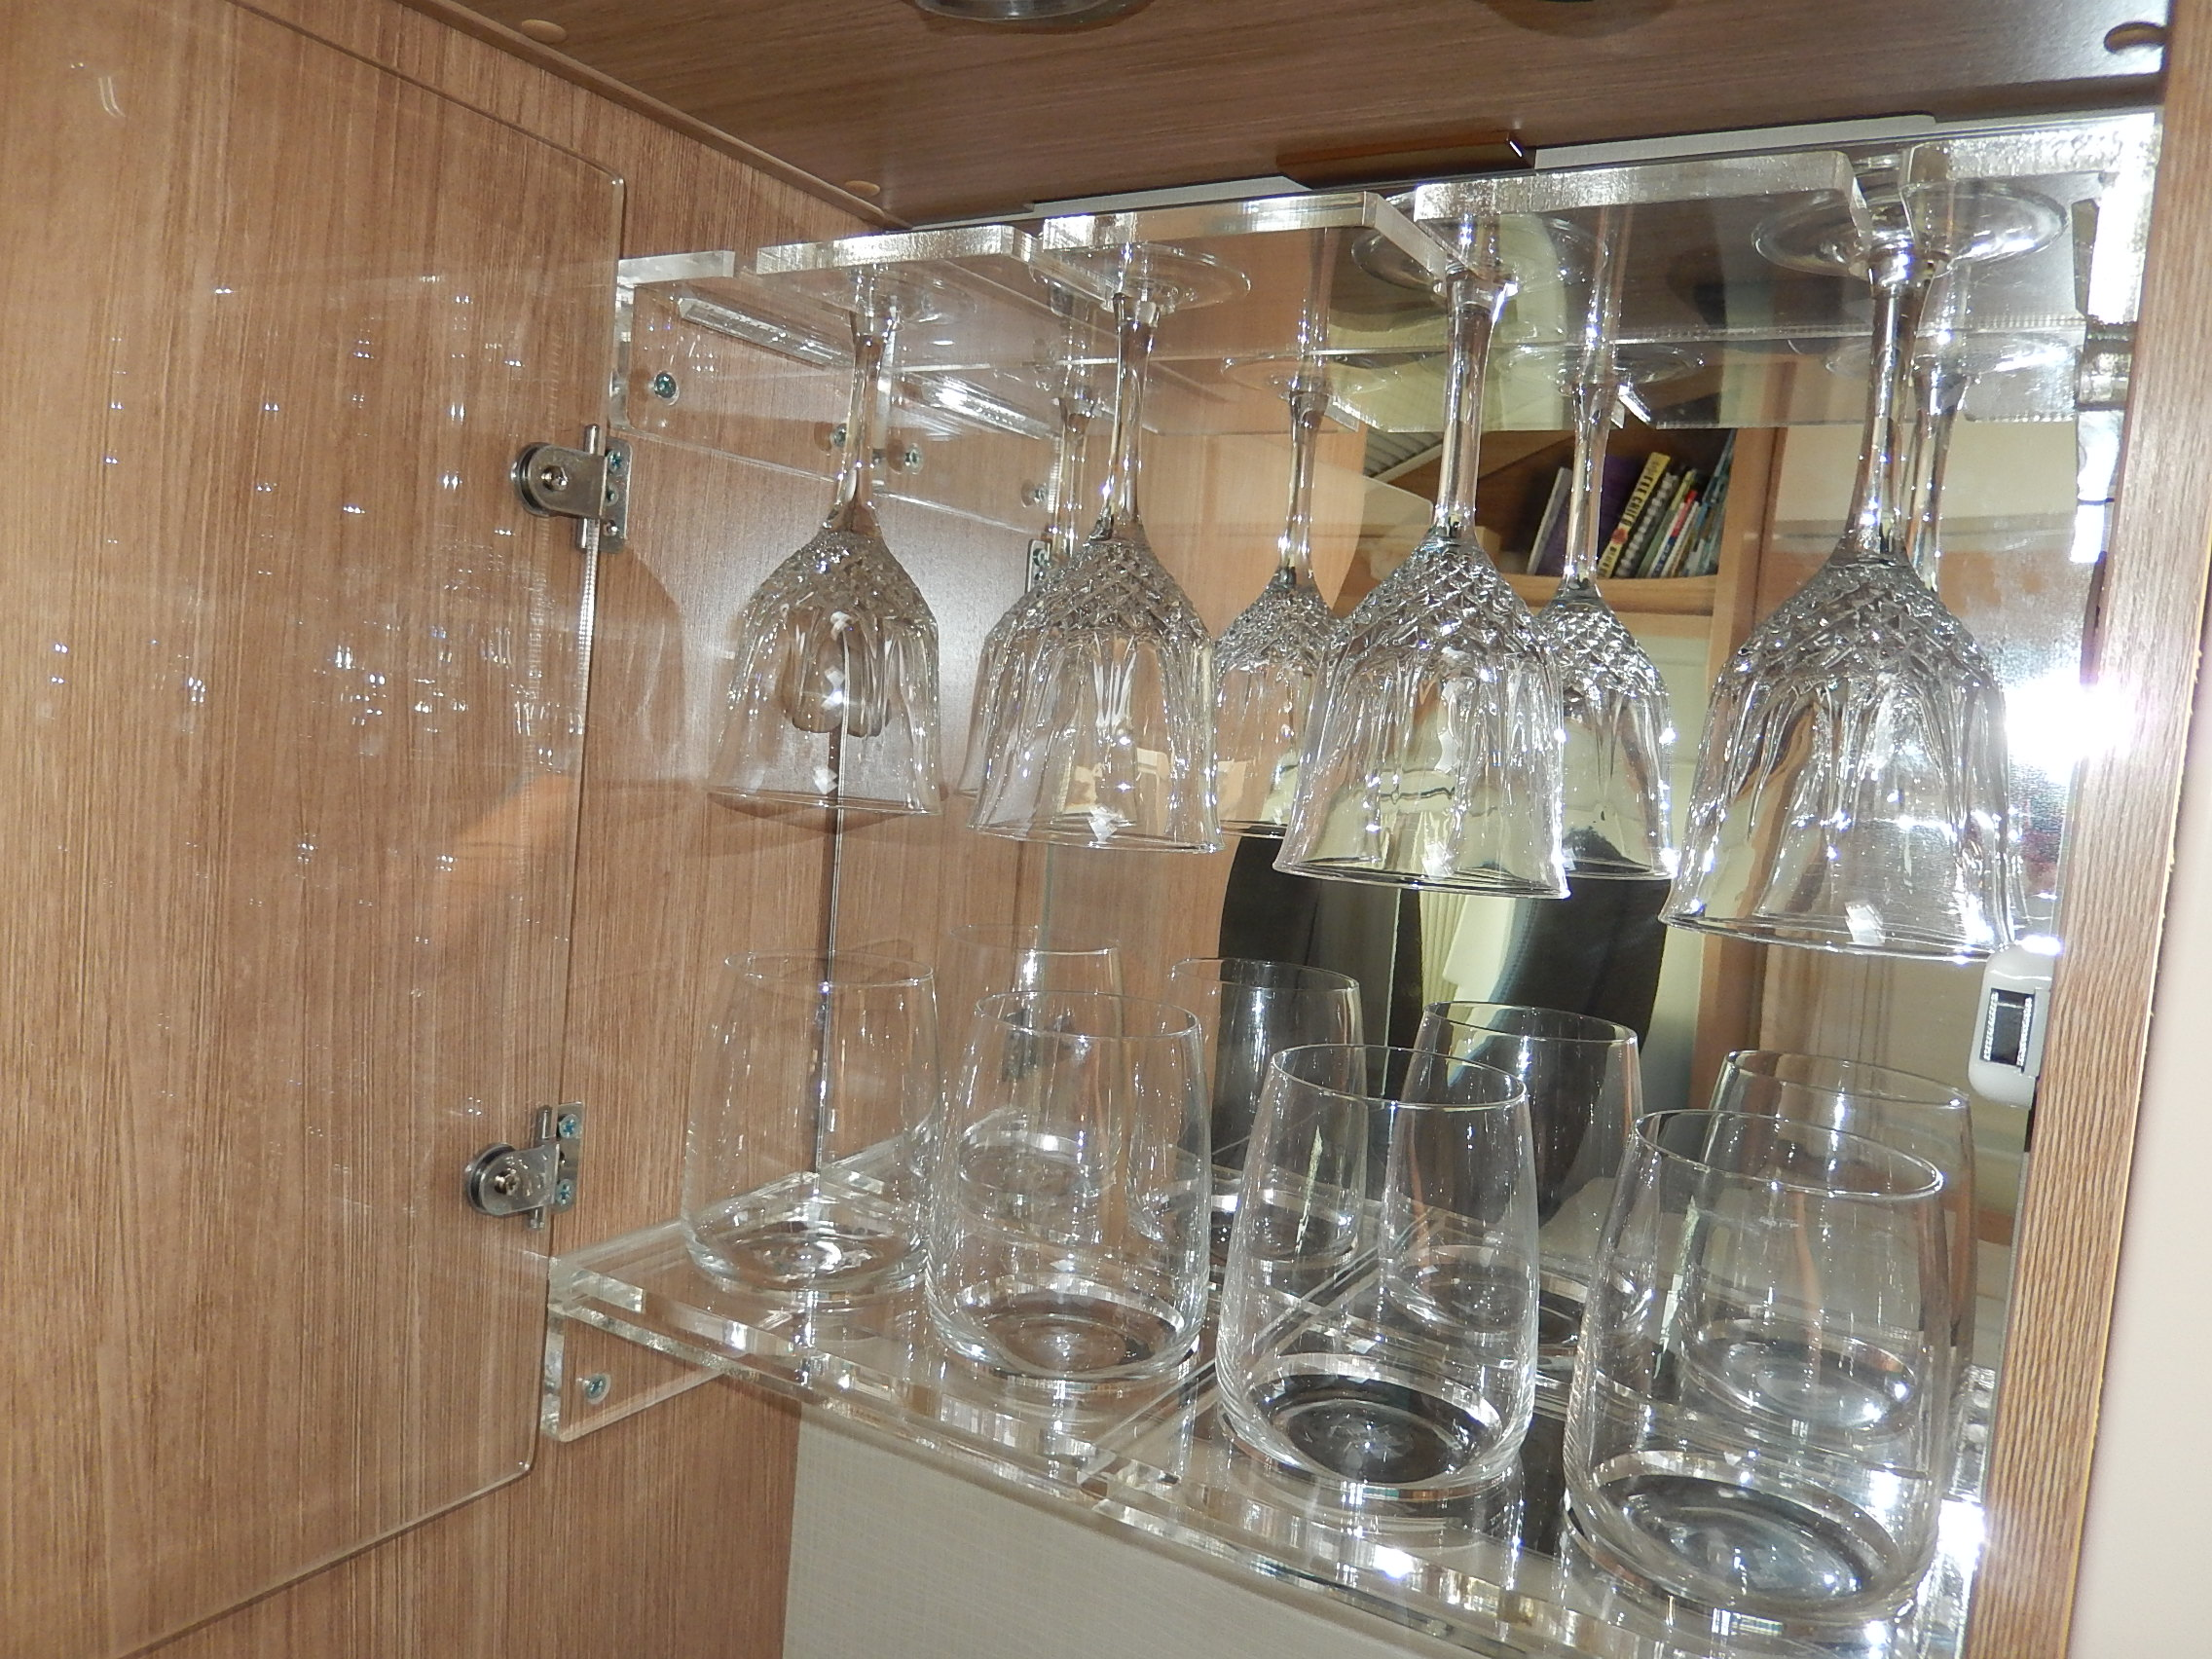 Picture of: A Glass Cabinet For Our Sunlight Zion Motorhomes Owner S Club New Zealand